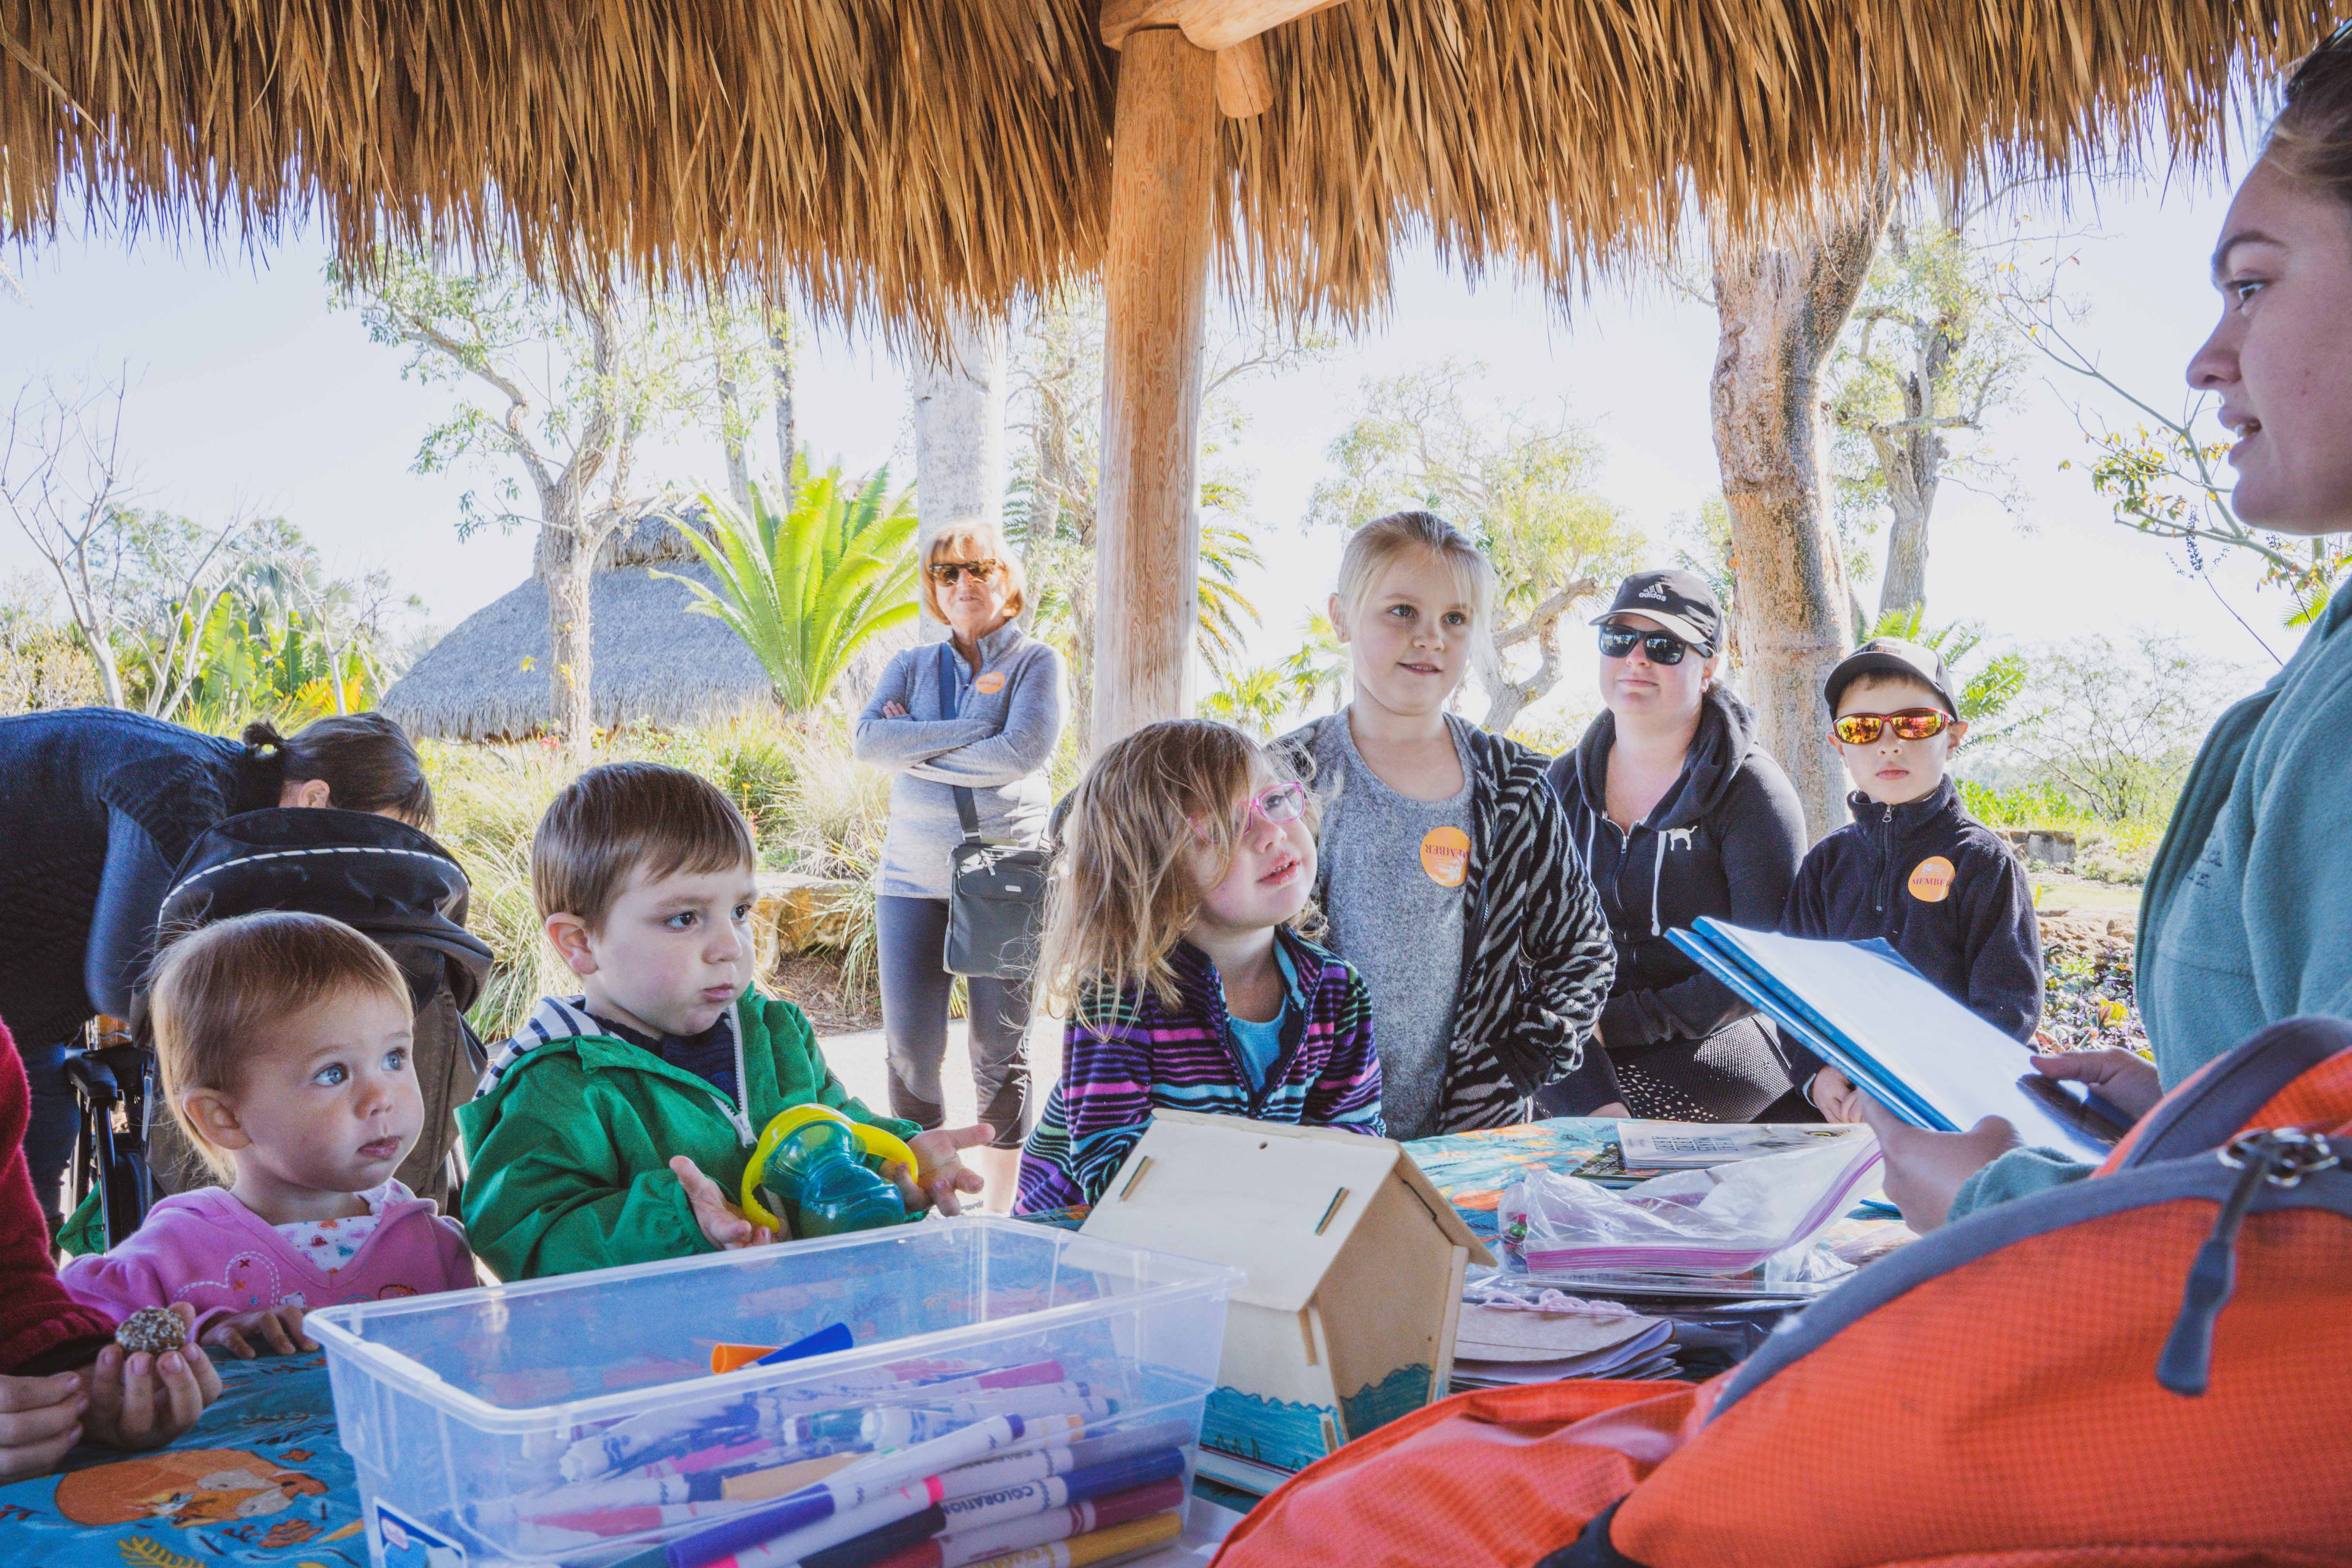 Naples Botanical Garden Employee interacts with family in Education program W.O.N.D.E.R.